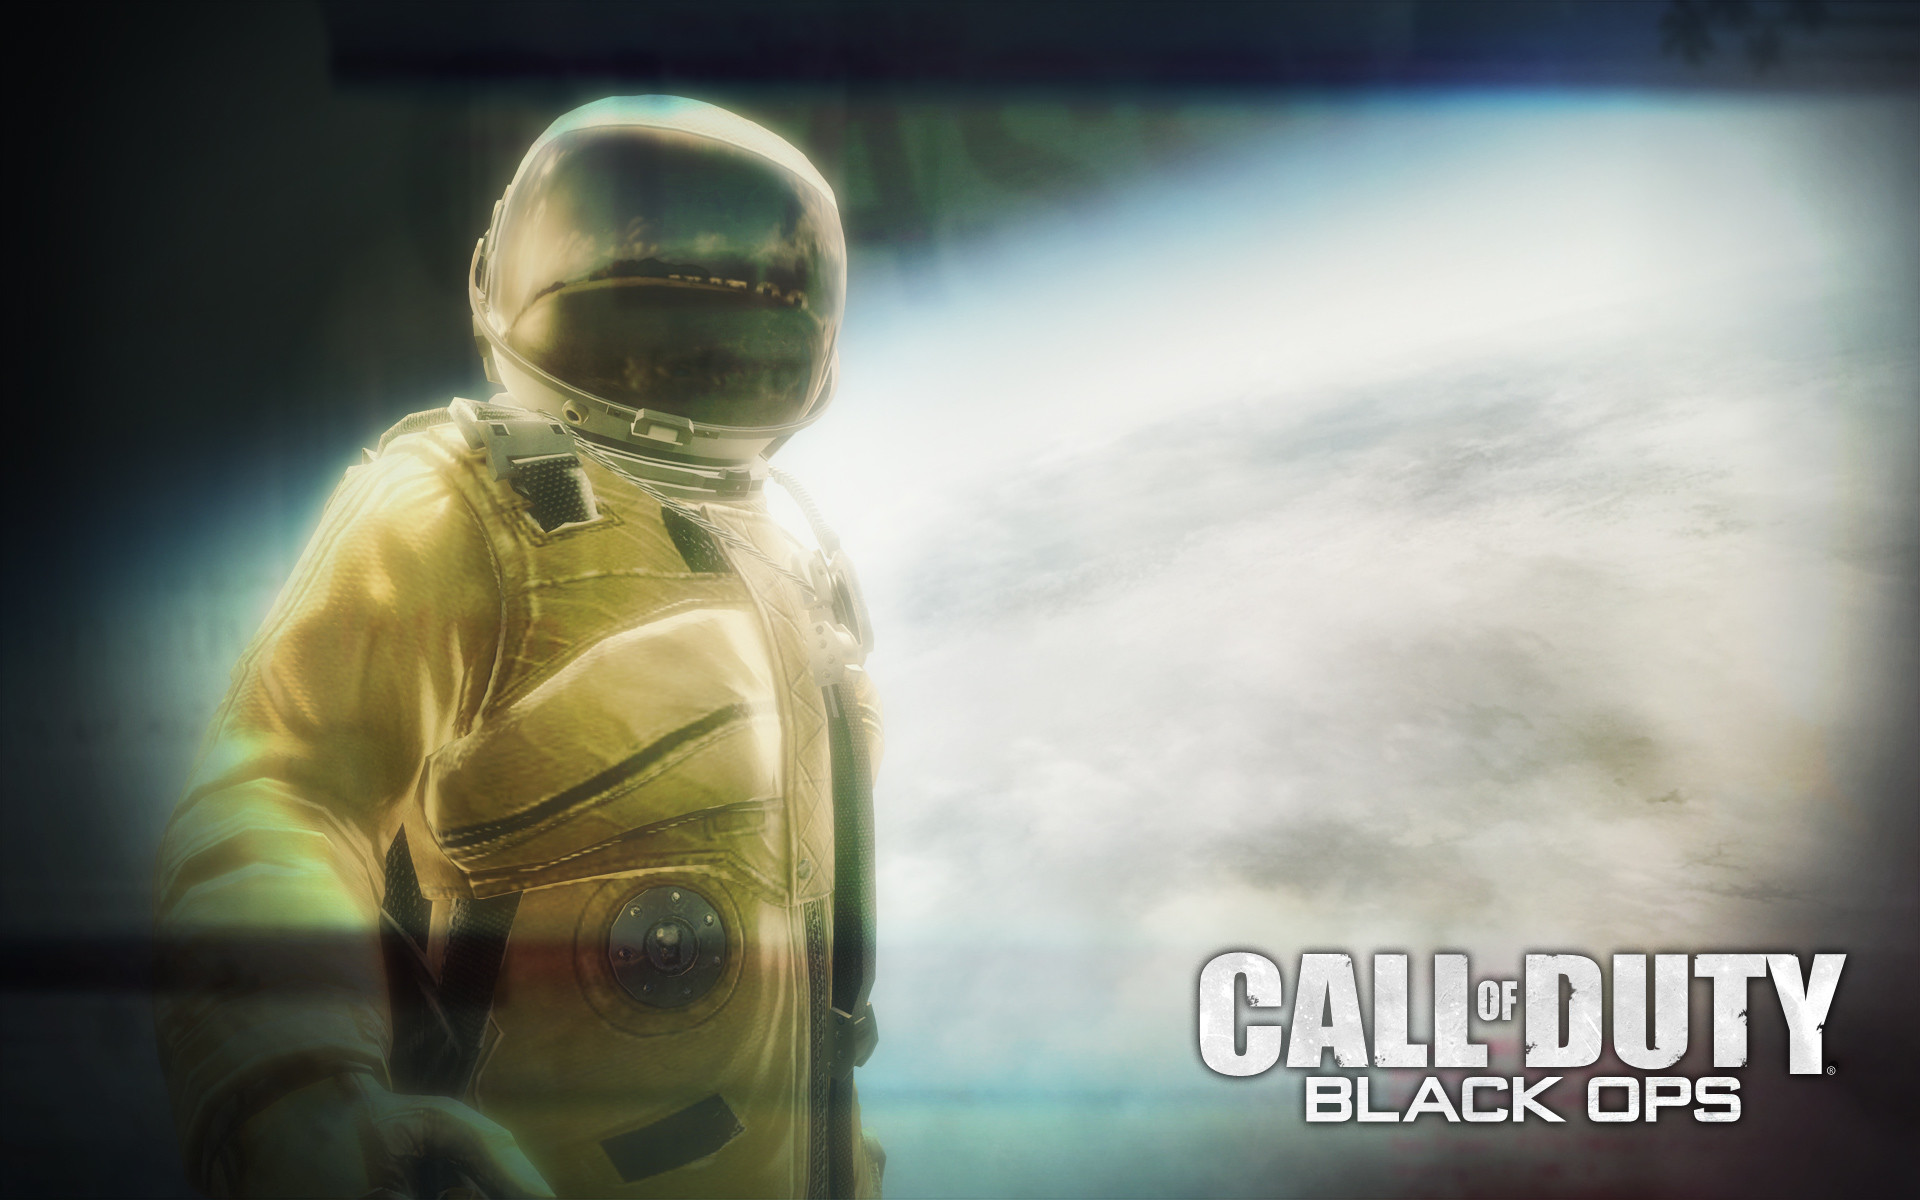 Call Of Duty Black Ops Wallpaper 1080p